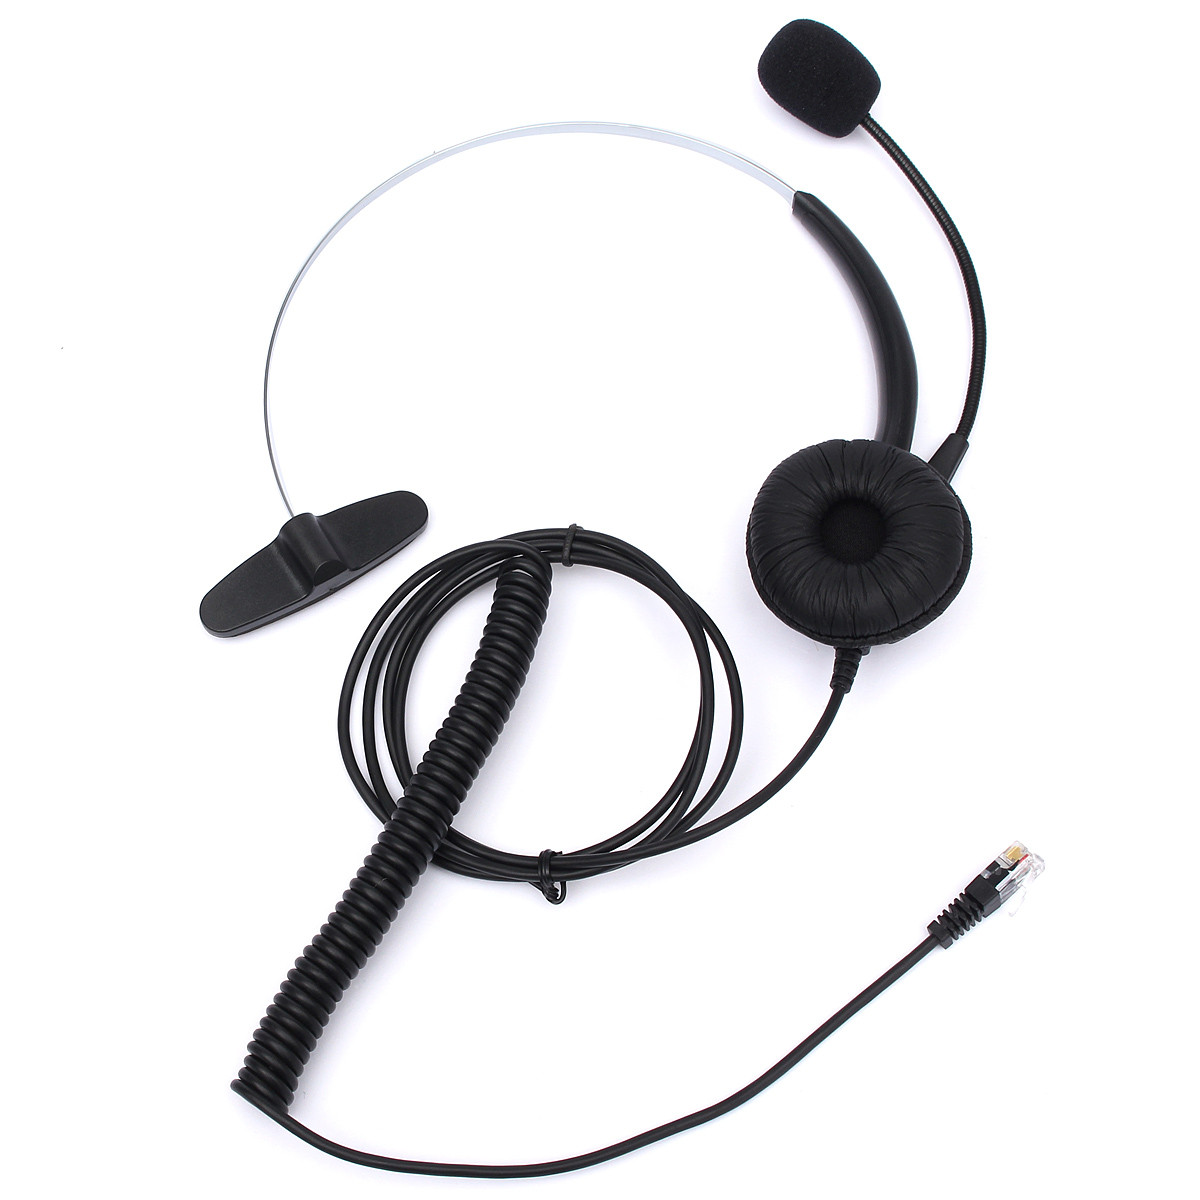 New RJ11 Headset With Microphone Adjustable Metal Headband Telephone Noise Reduction Headphone For Office Call Center